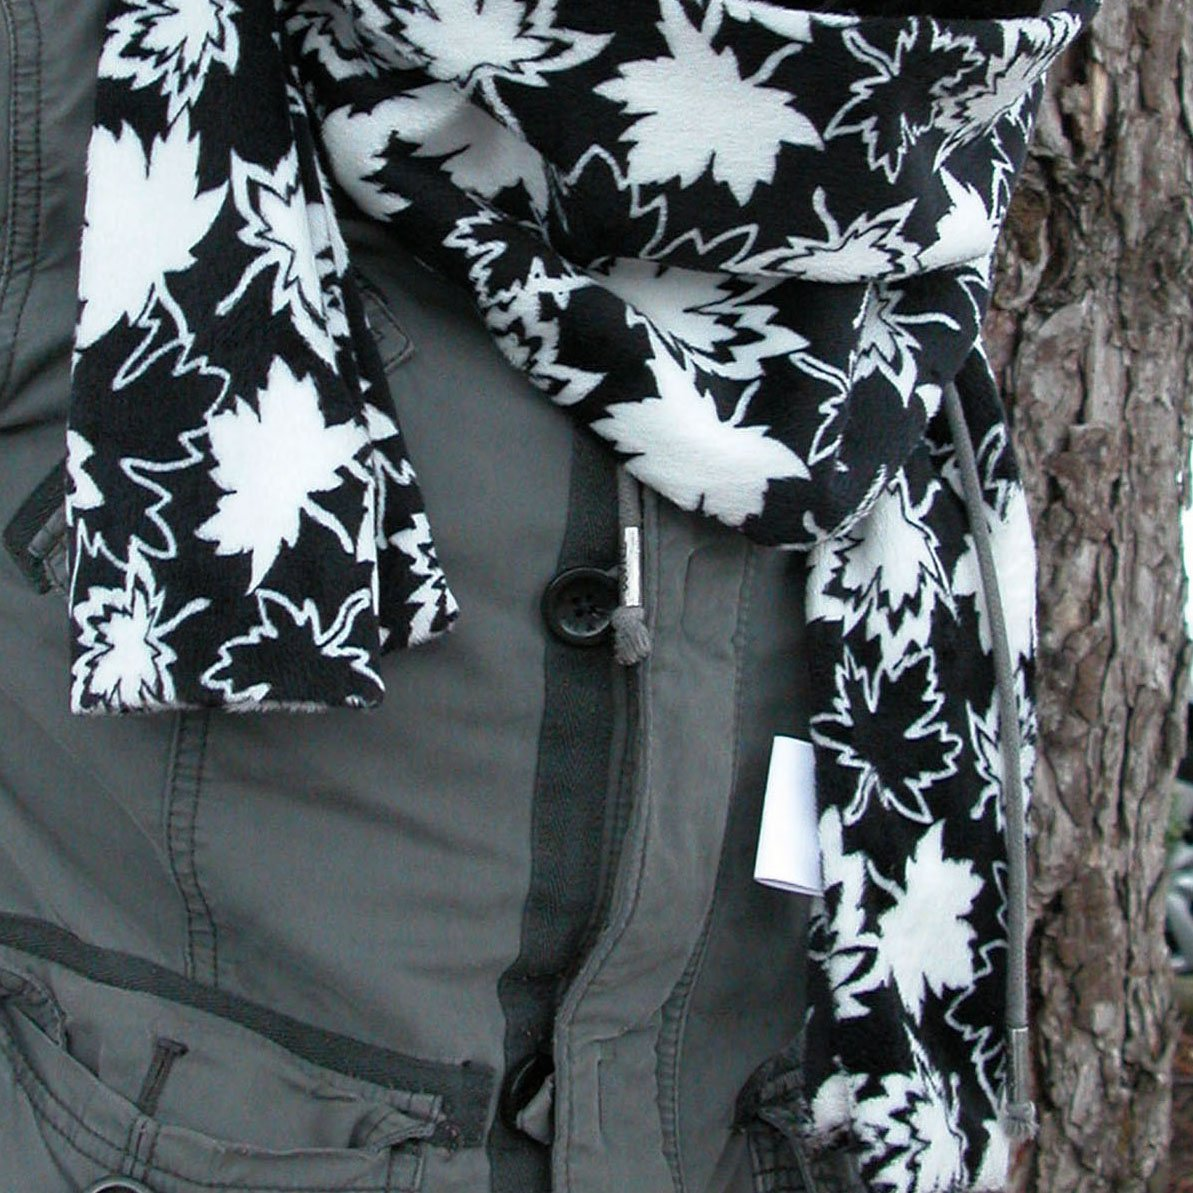 SHAN-G02 MB - CANADIAN MAPLES MINKY SCARF BY SHANIA SUNGA 72 BLK/WHI